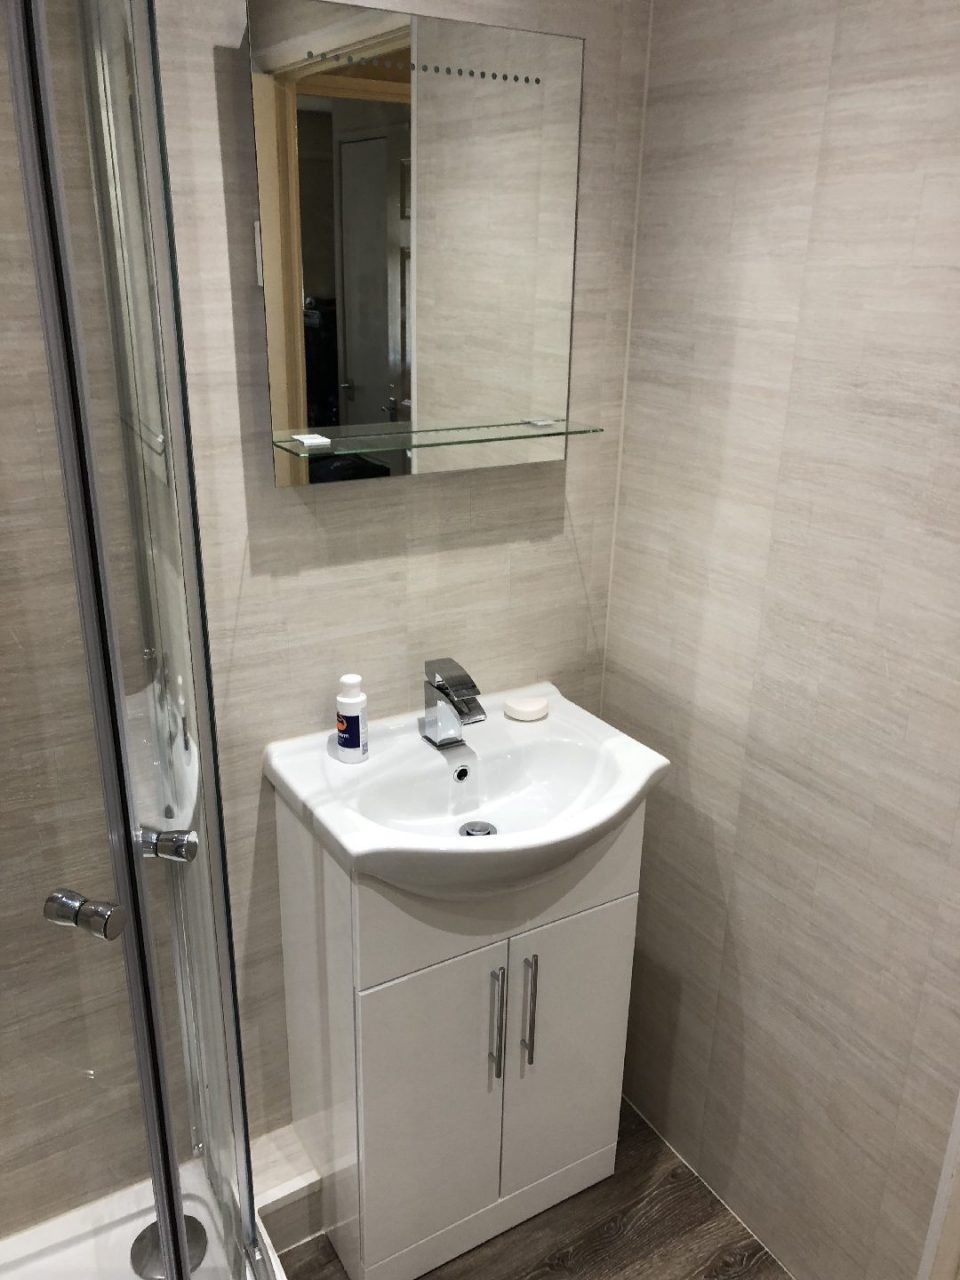 Full Bathroom renovated - bath replaced by easy access shower enclosure - C